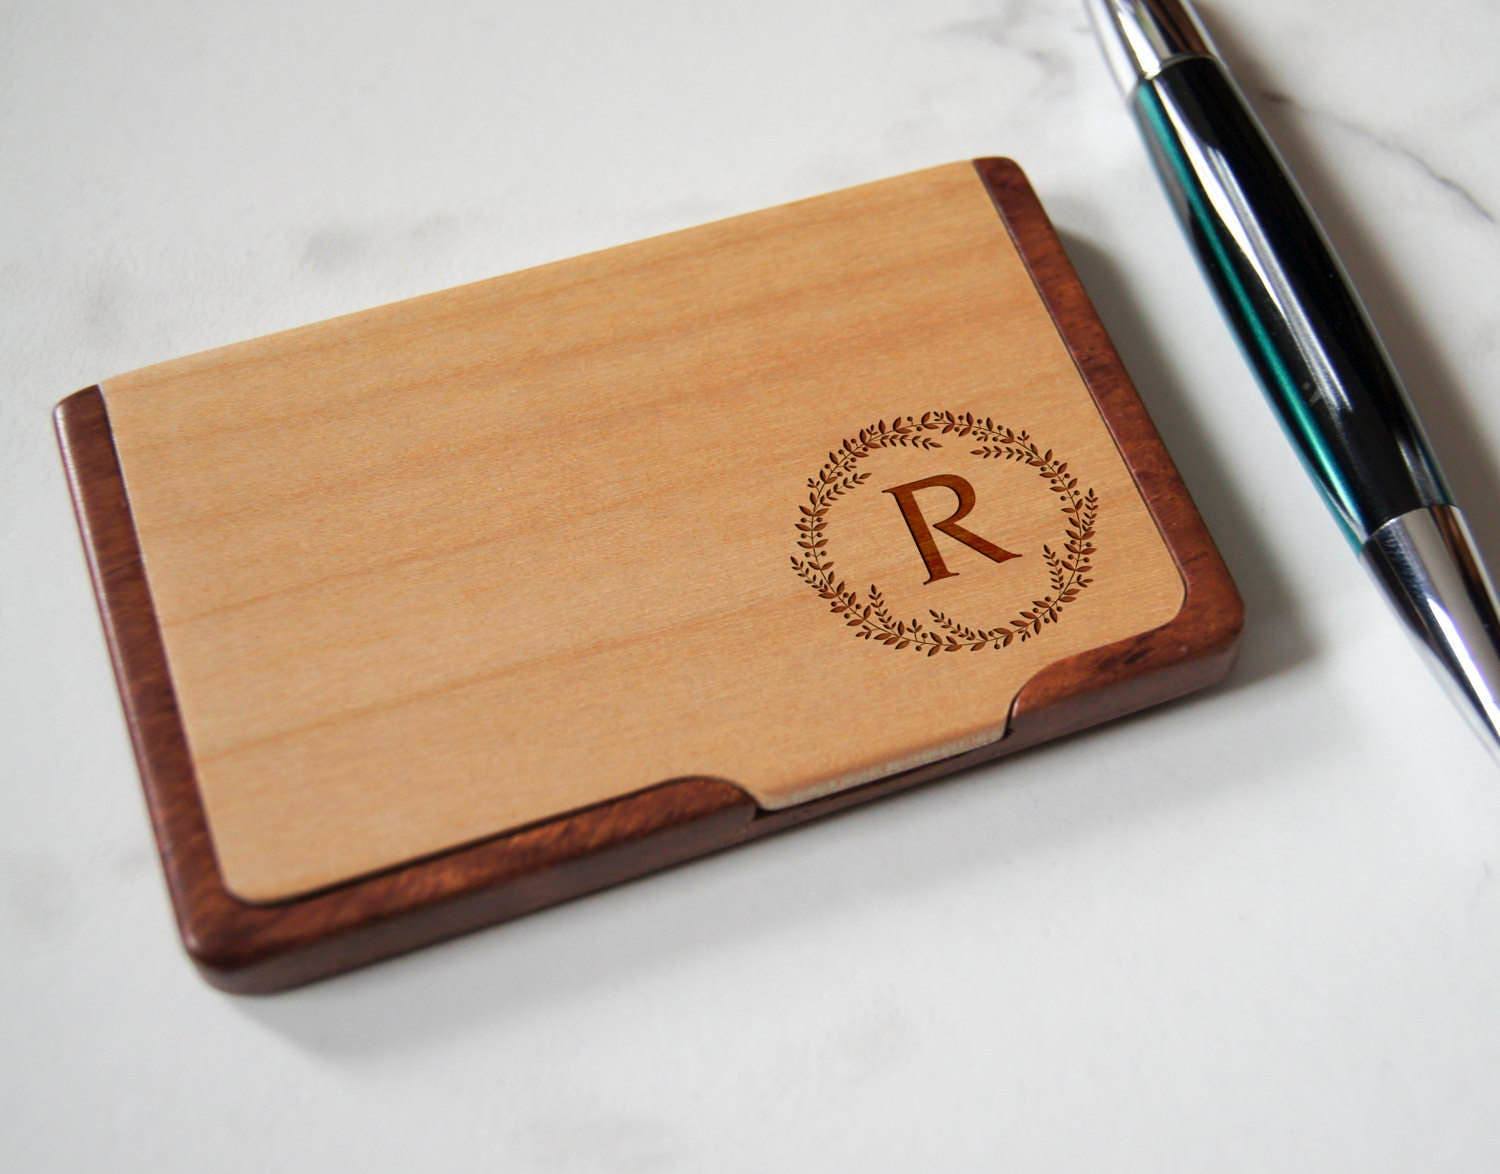 Customized Business Cards Holder, Personalized Wooden Business ...